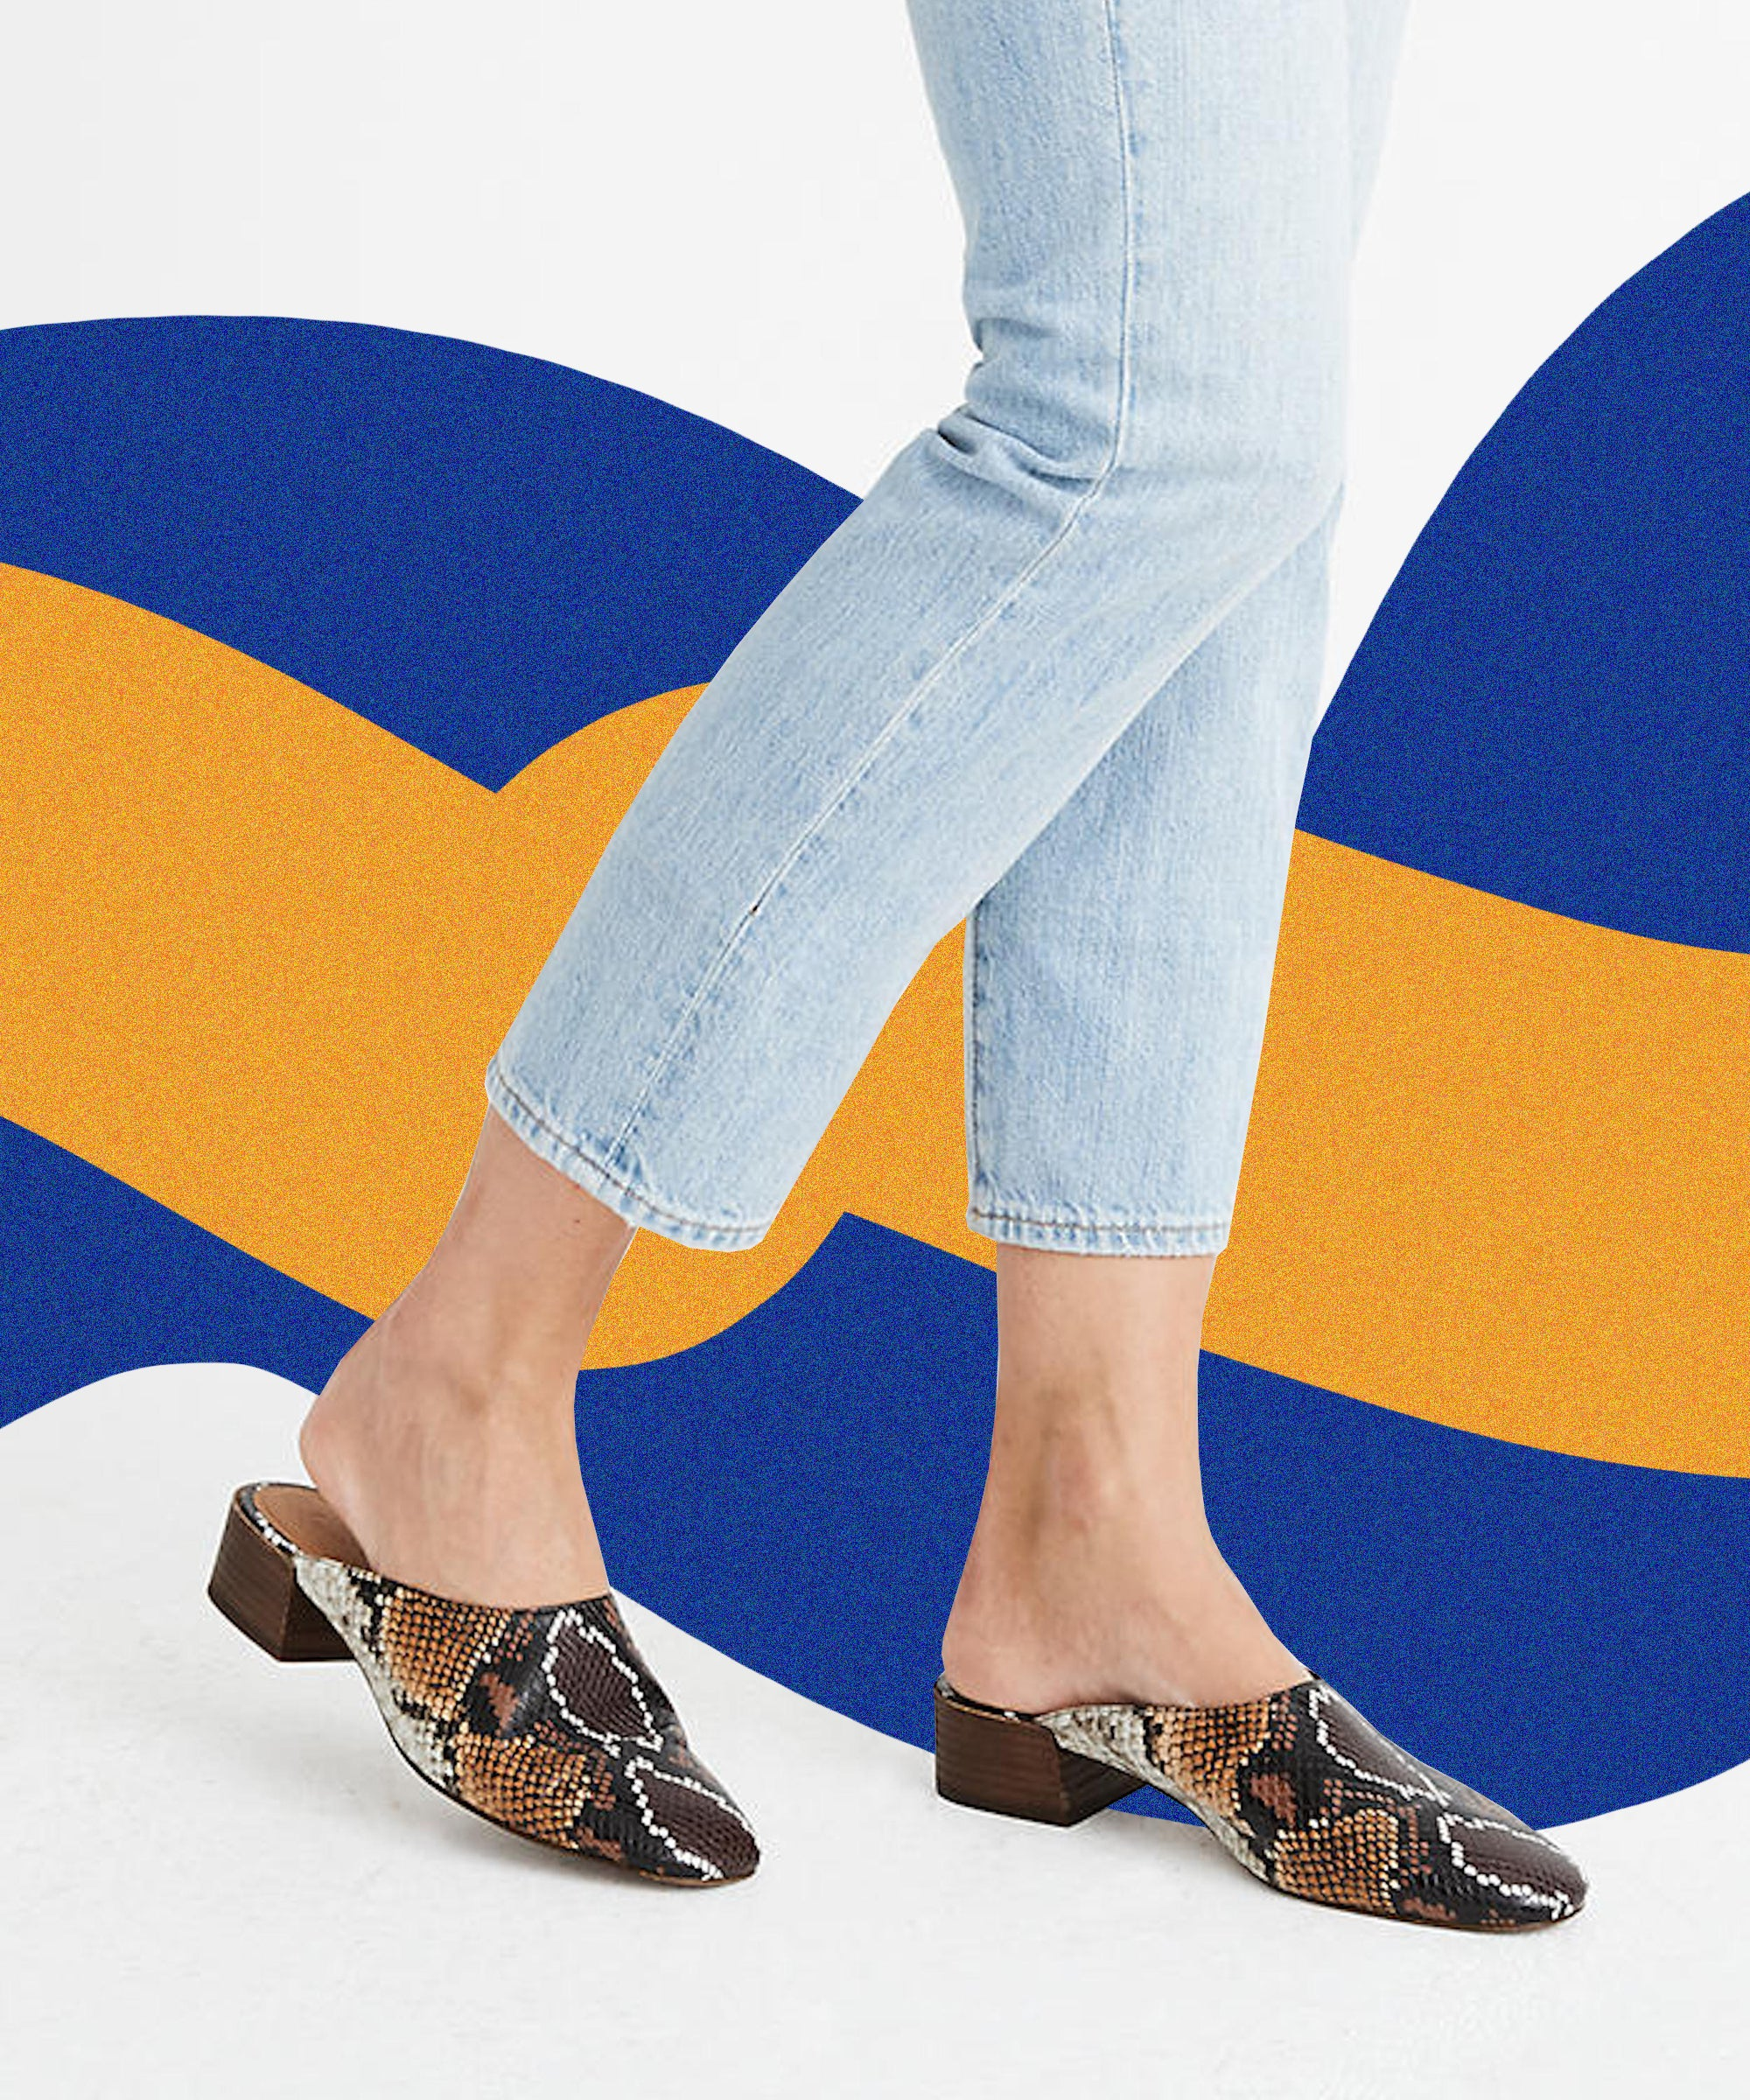 Madewell's Sale-On-Sale Is Extra (An Extra 30% Off, That Is)